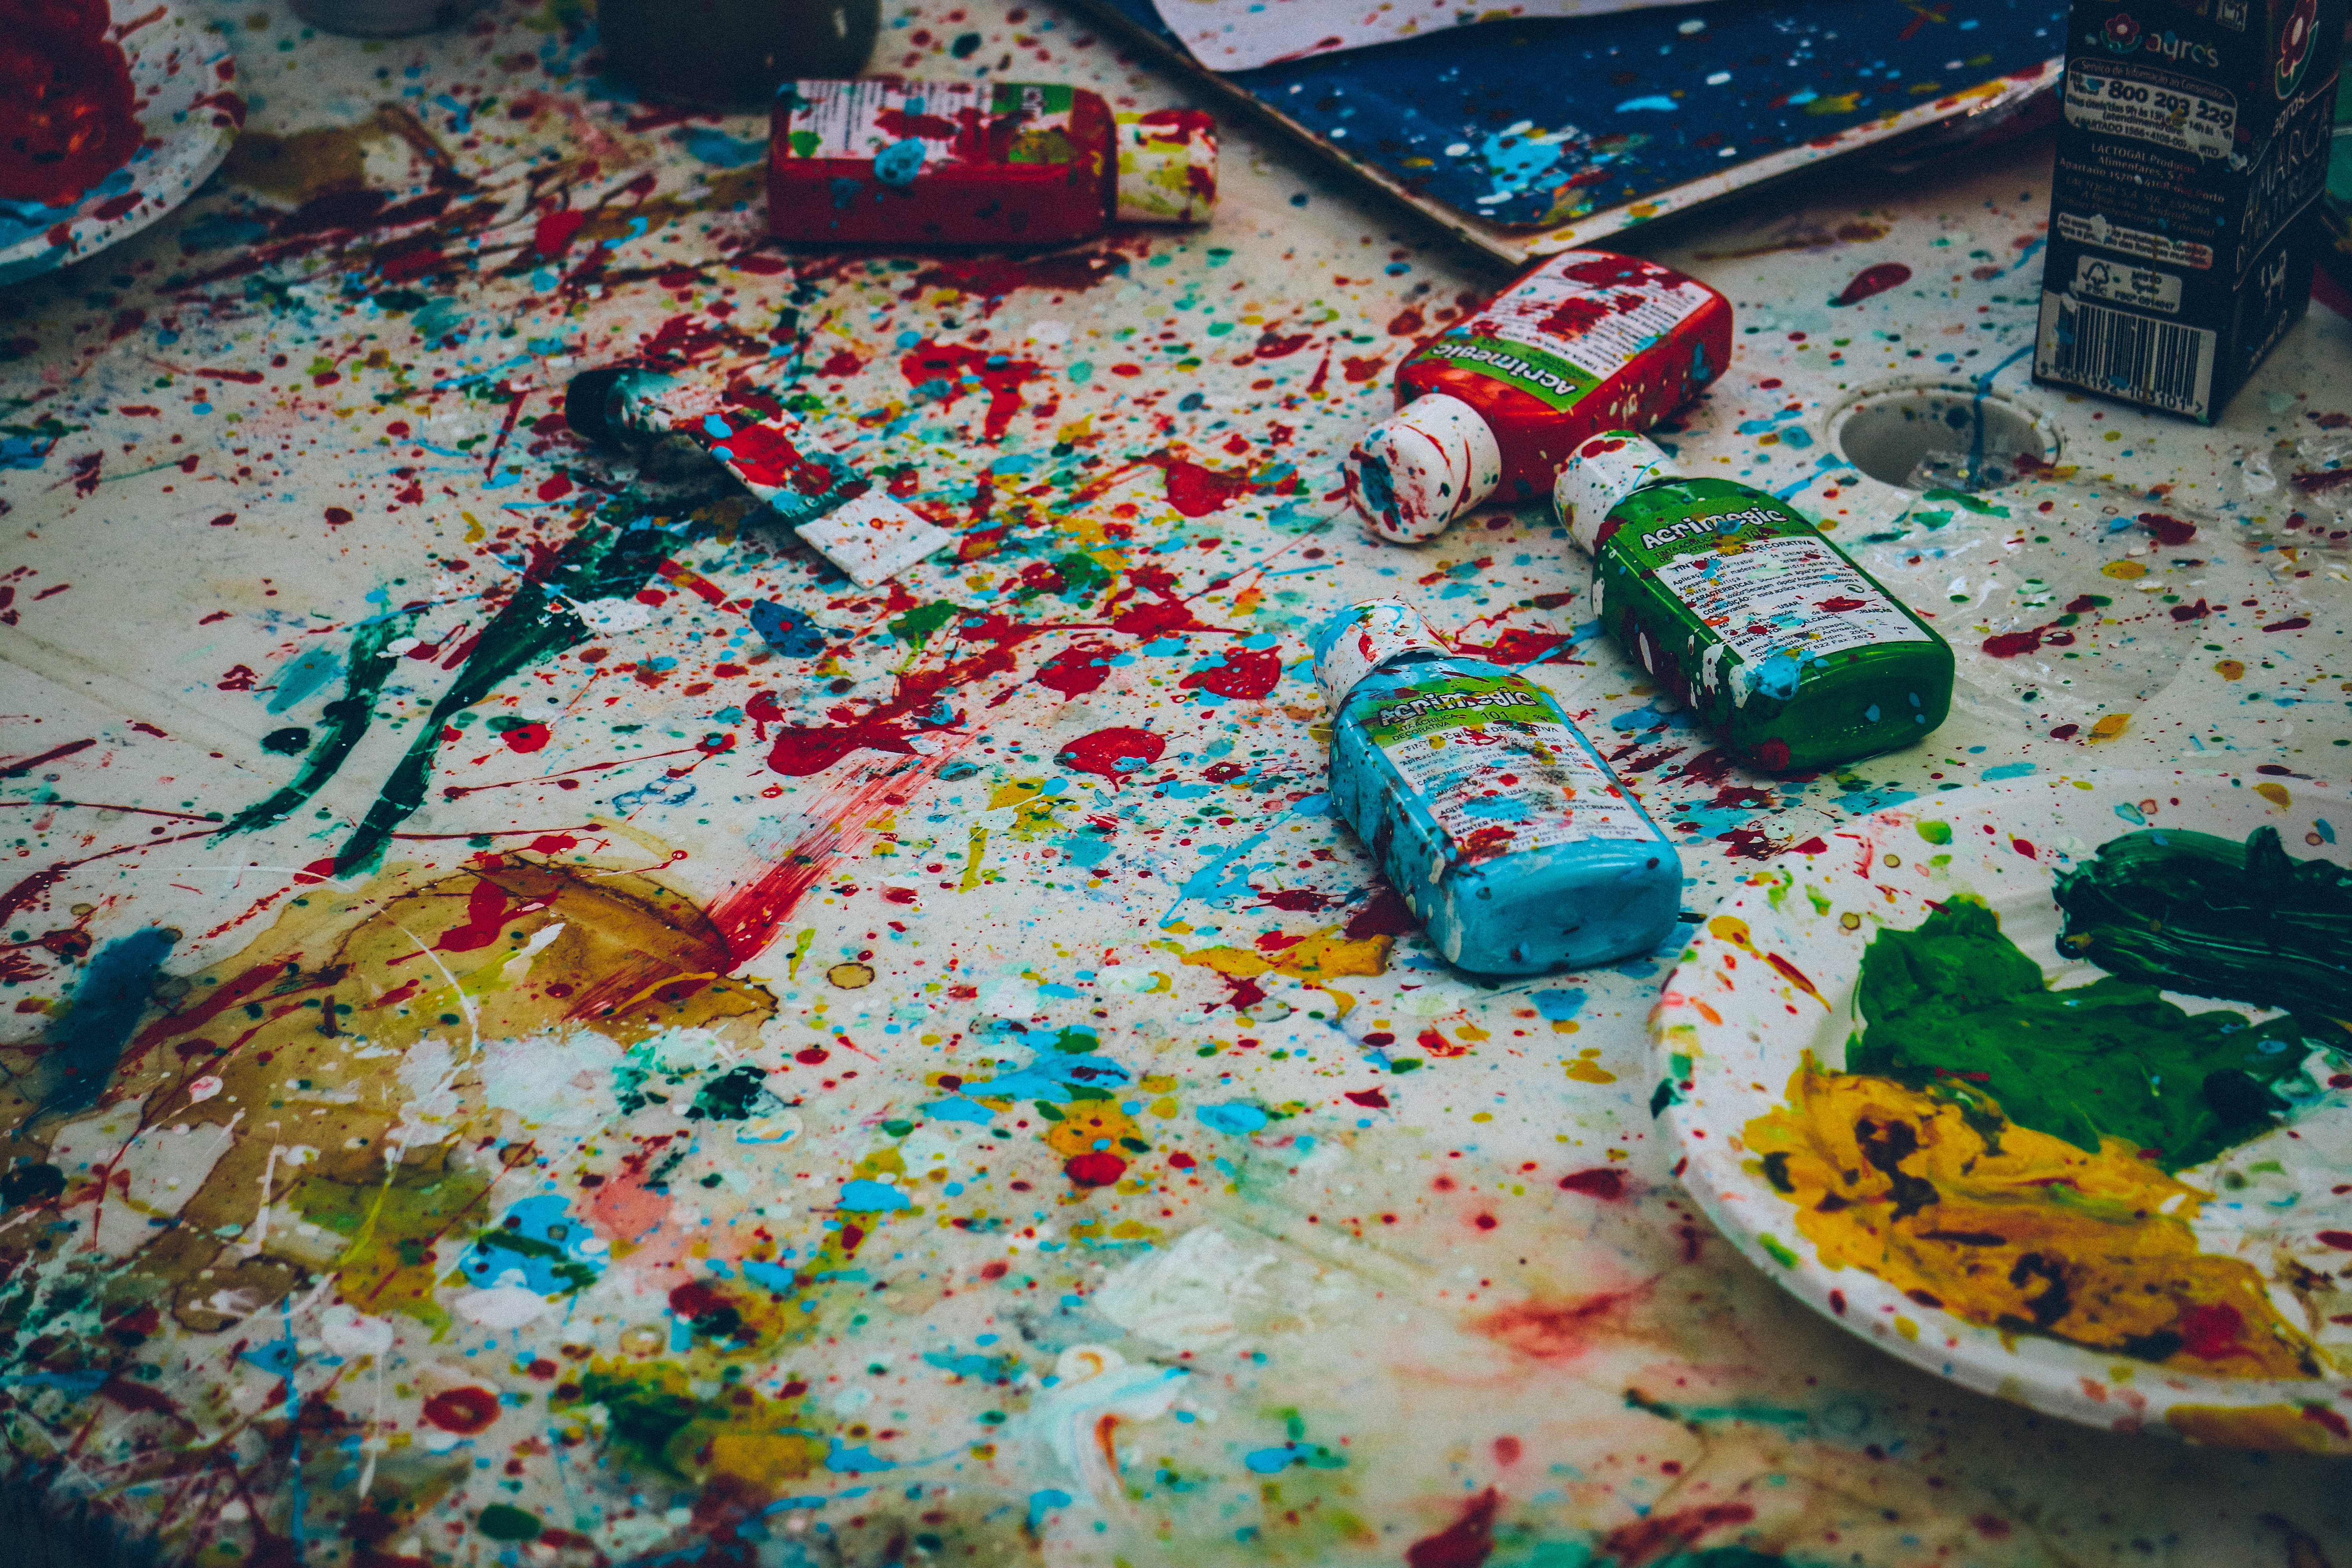 Splattered paint by Ricardo Viana on Unsplash